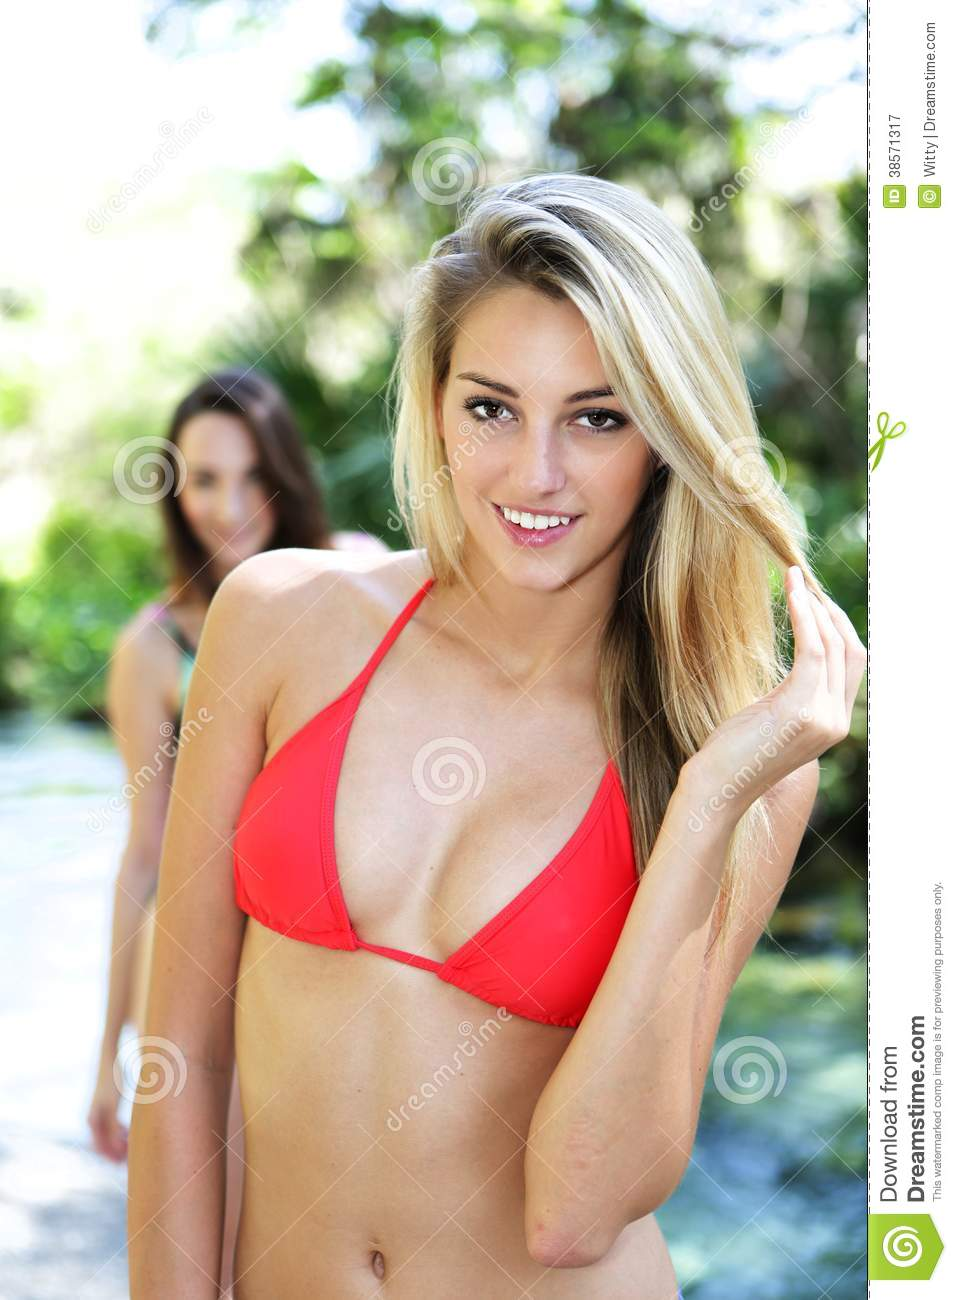 Pretty Girls That Make The World A Little More Beautiful: Cute And Pretty Girls Stock Image. Image Of Pretty, Cute